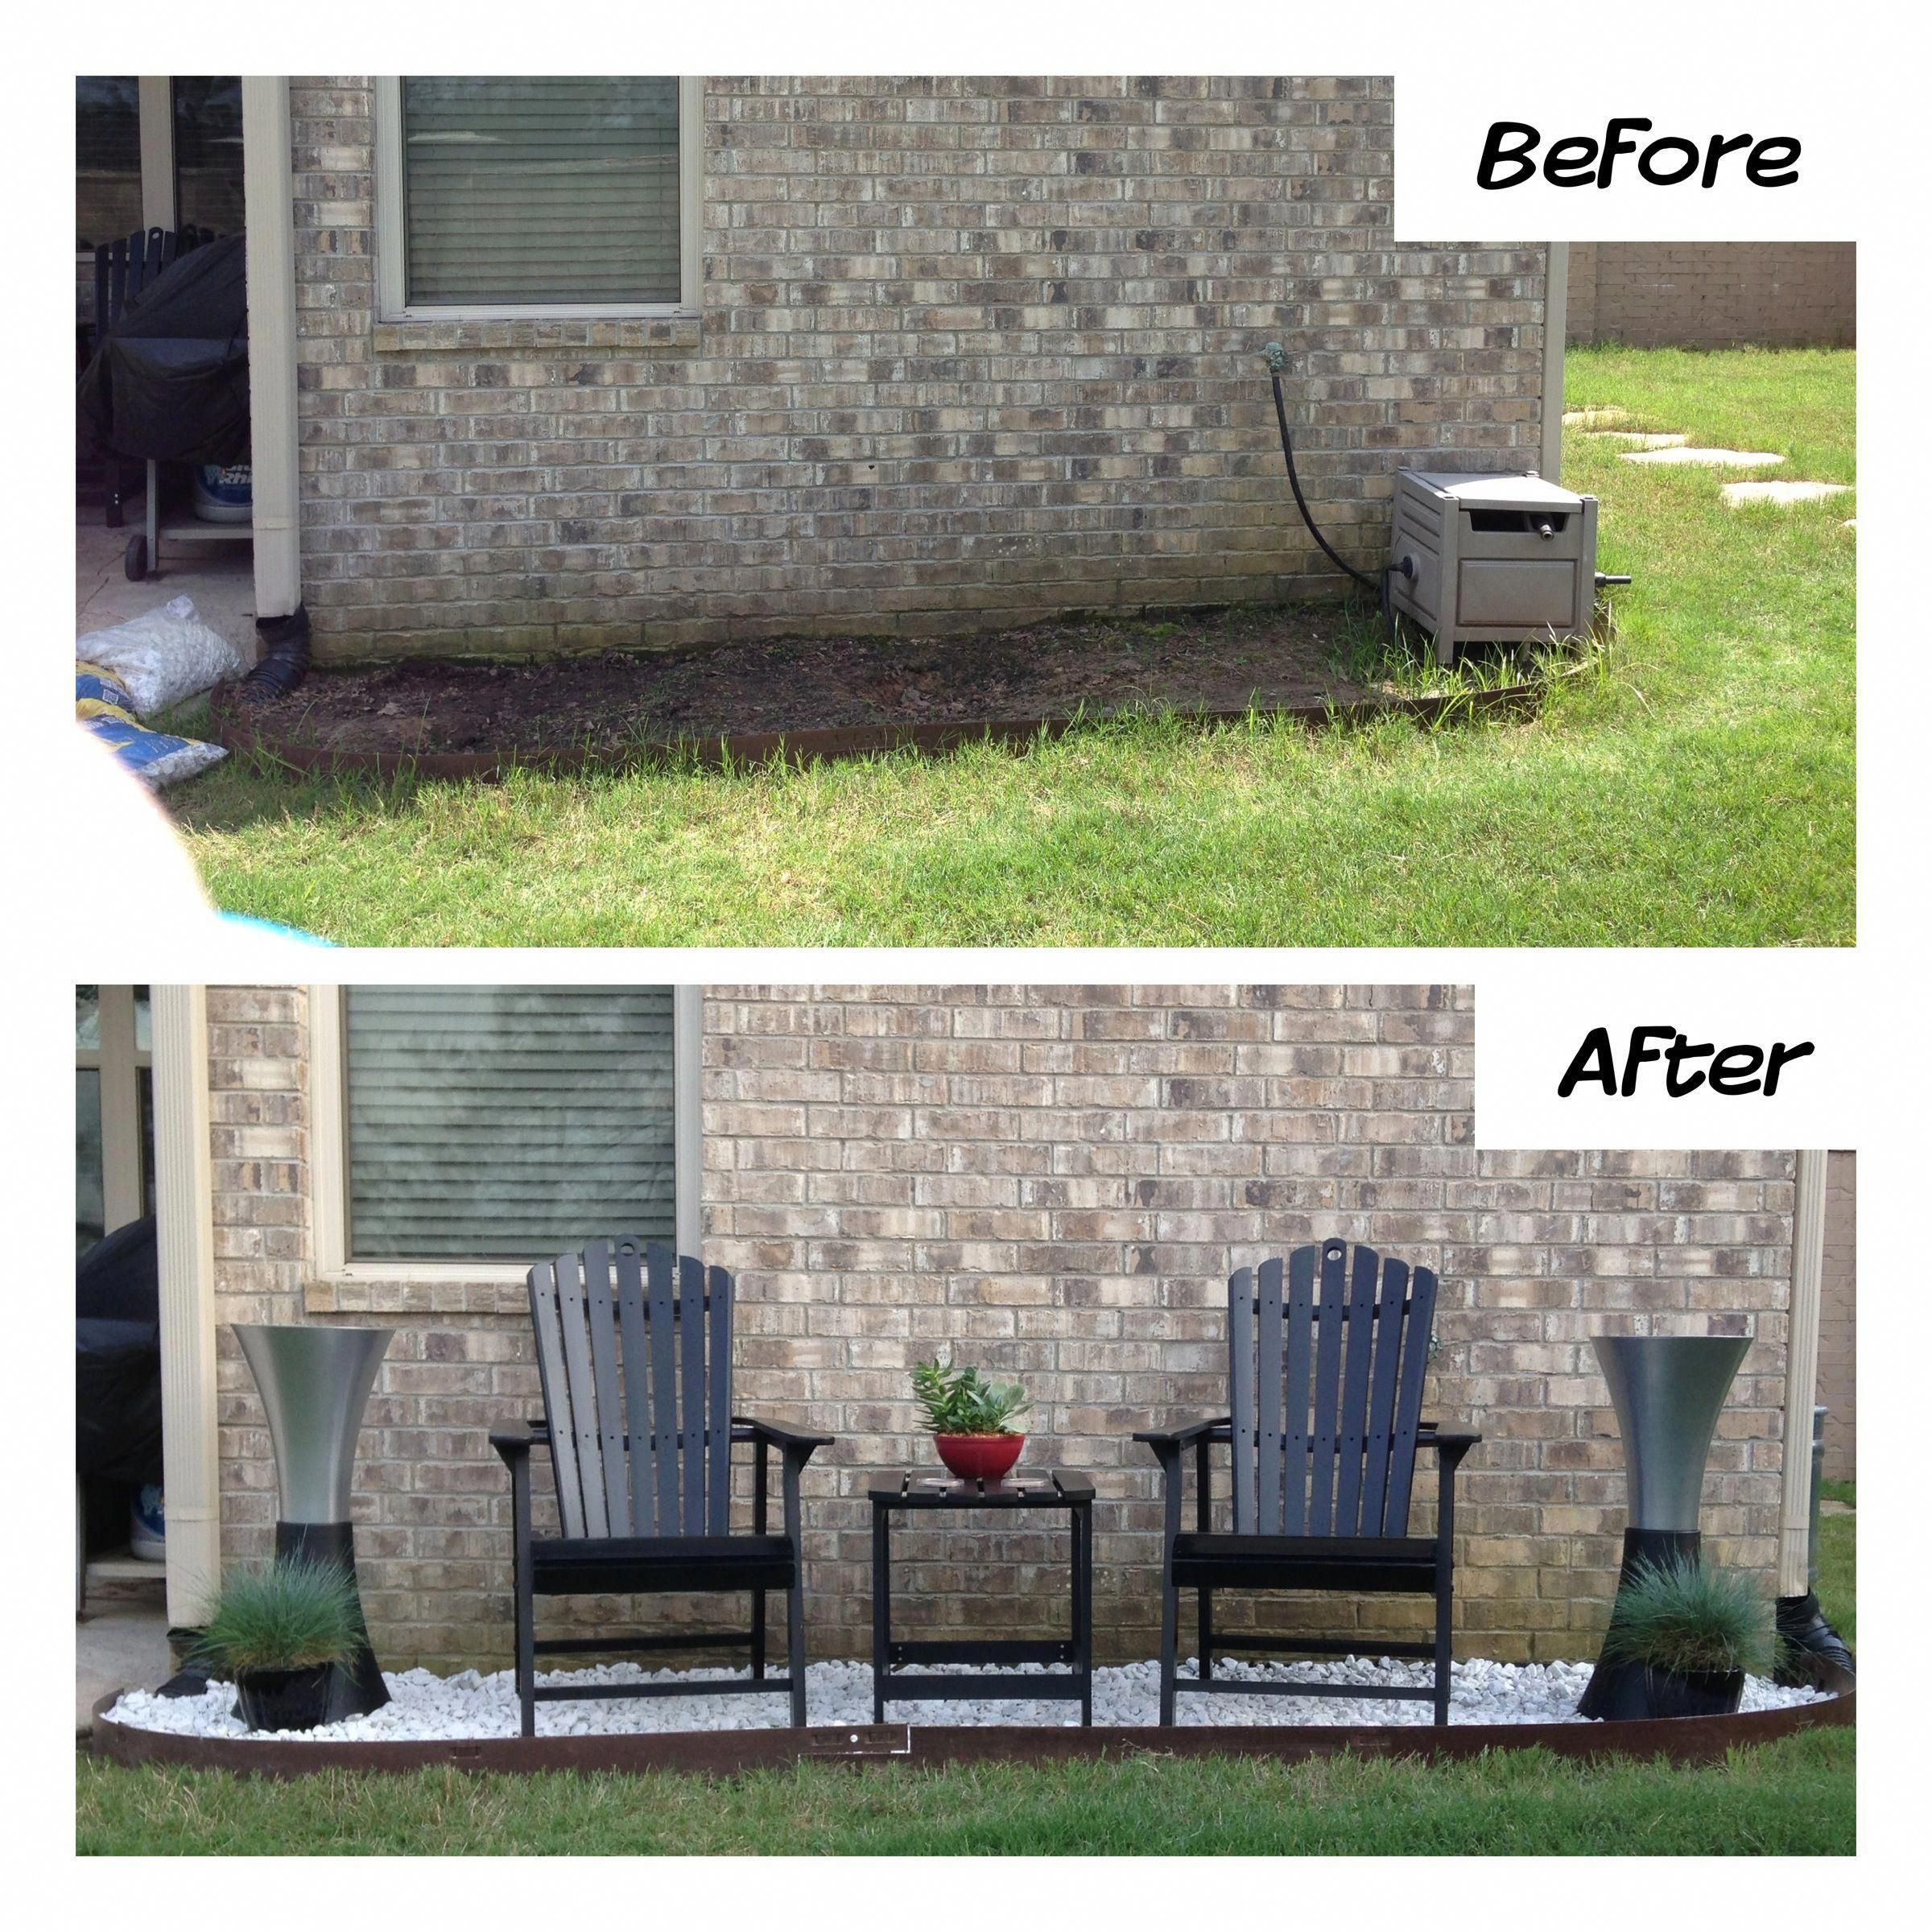 Flowerbed Makeover. Created A Backyard Seating Area Using